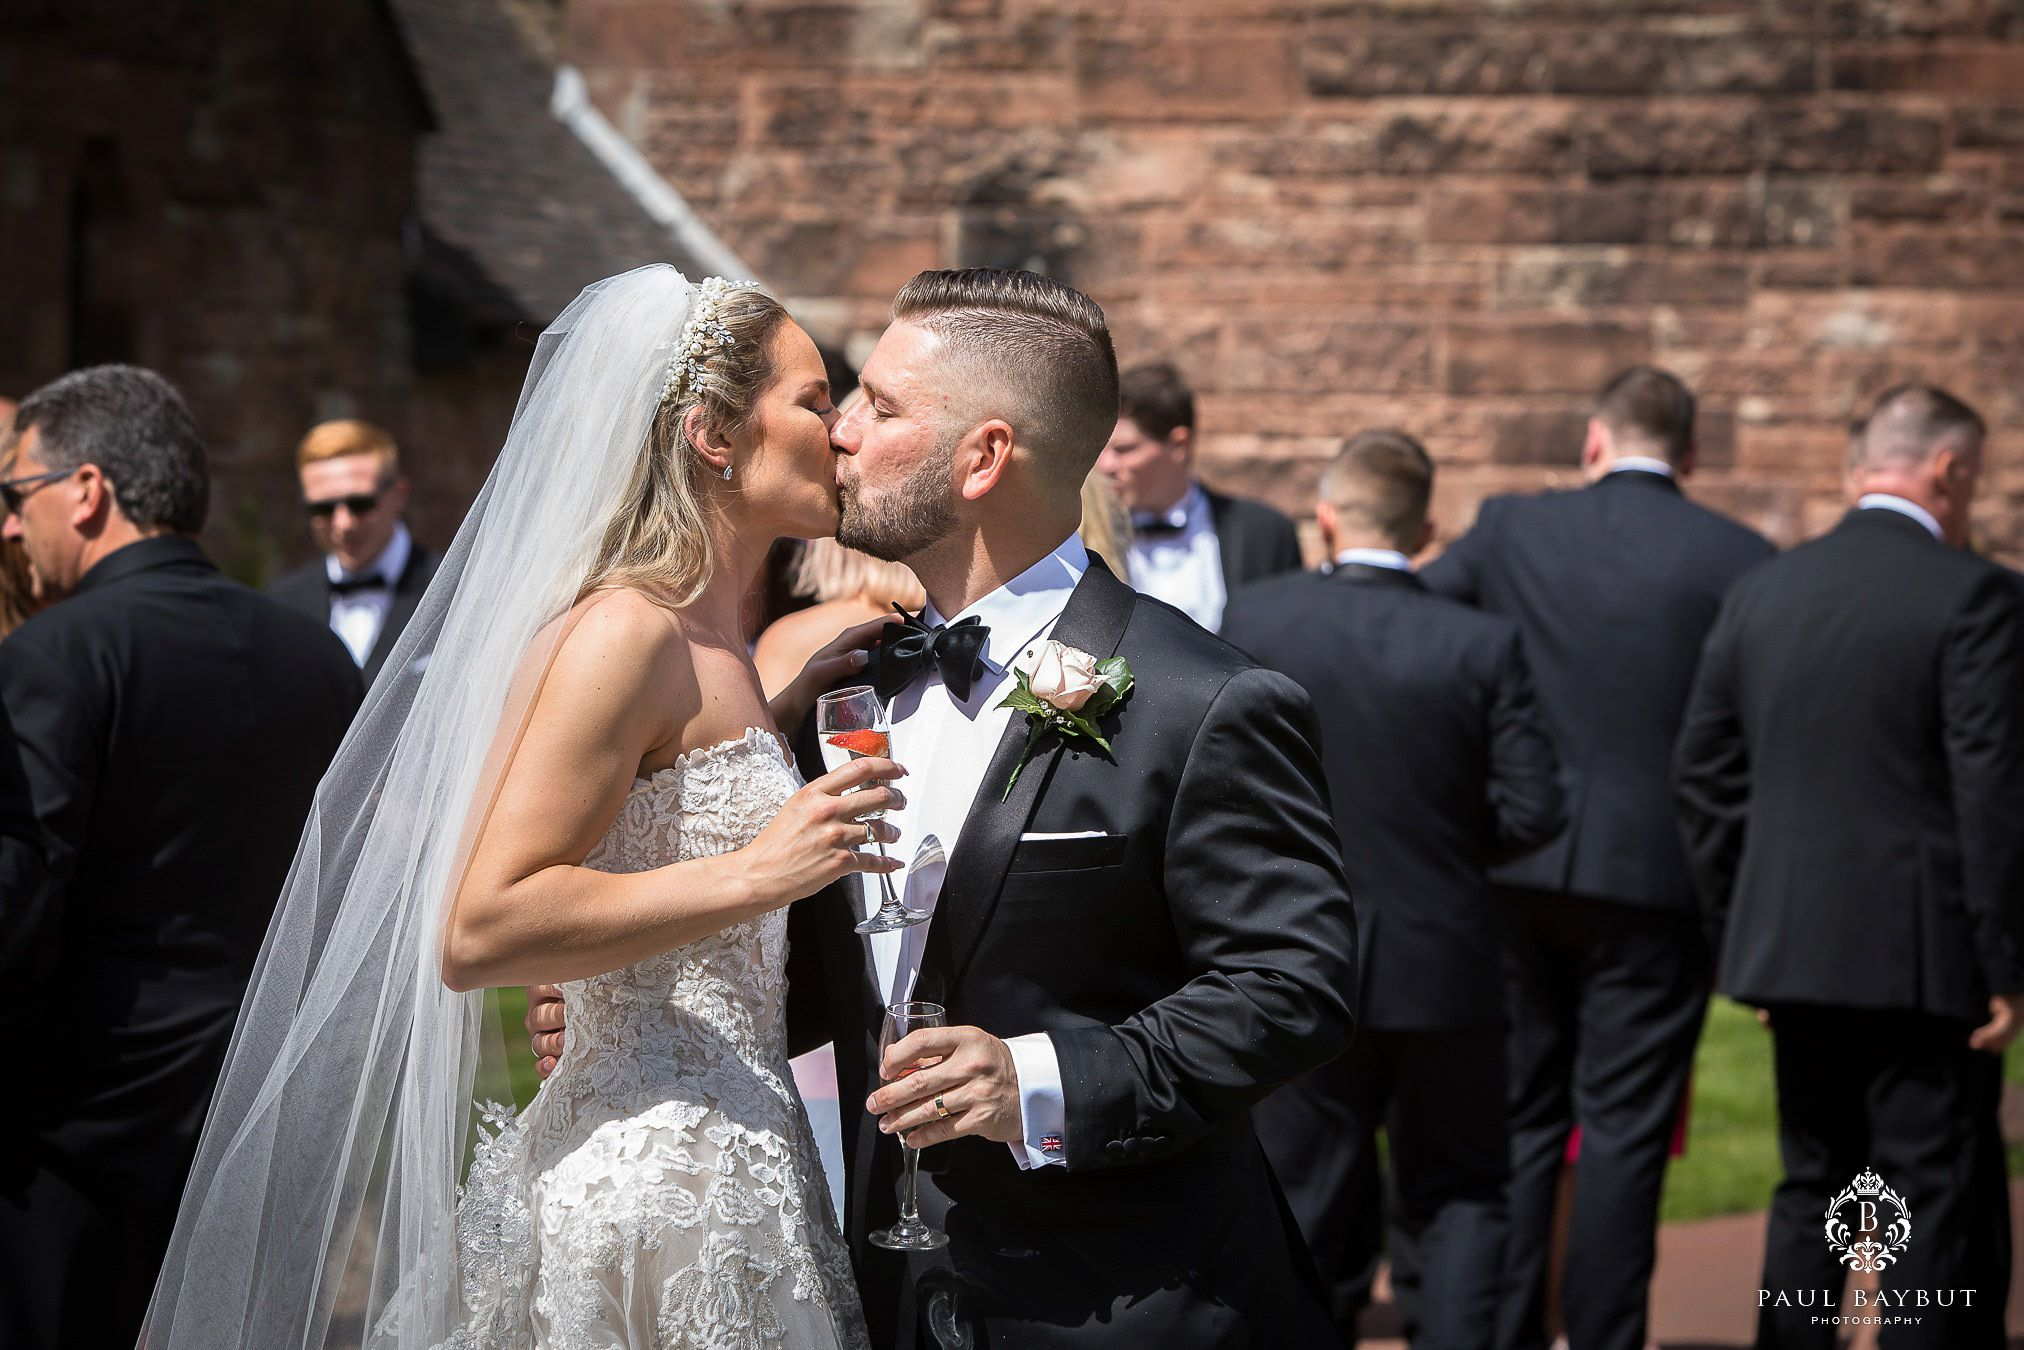 Bride and groom share a kiss at Peckforon castle during their first dance